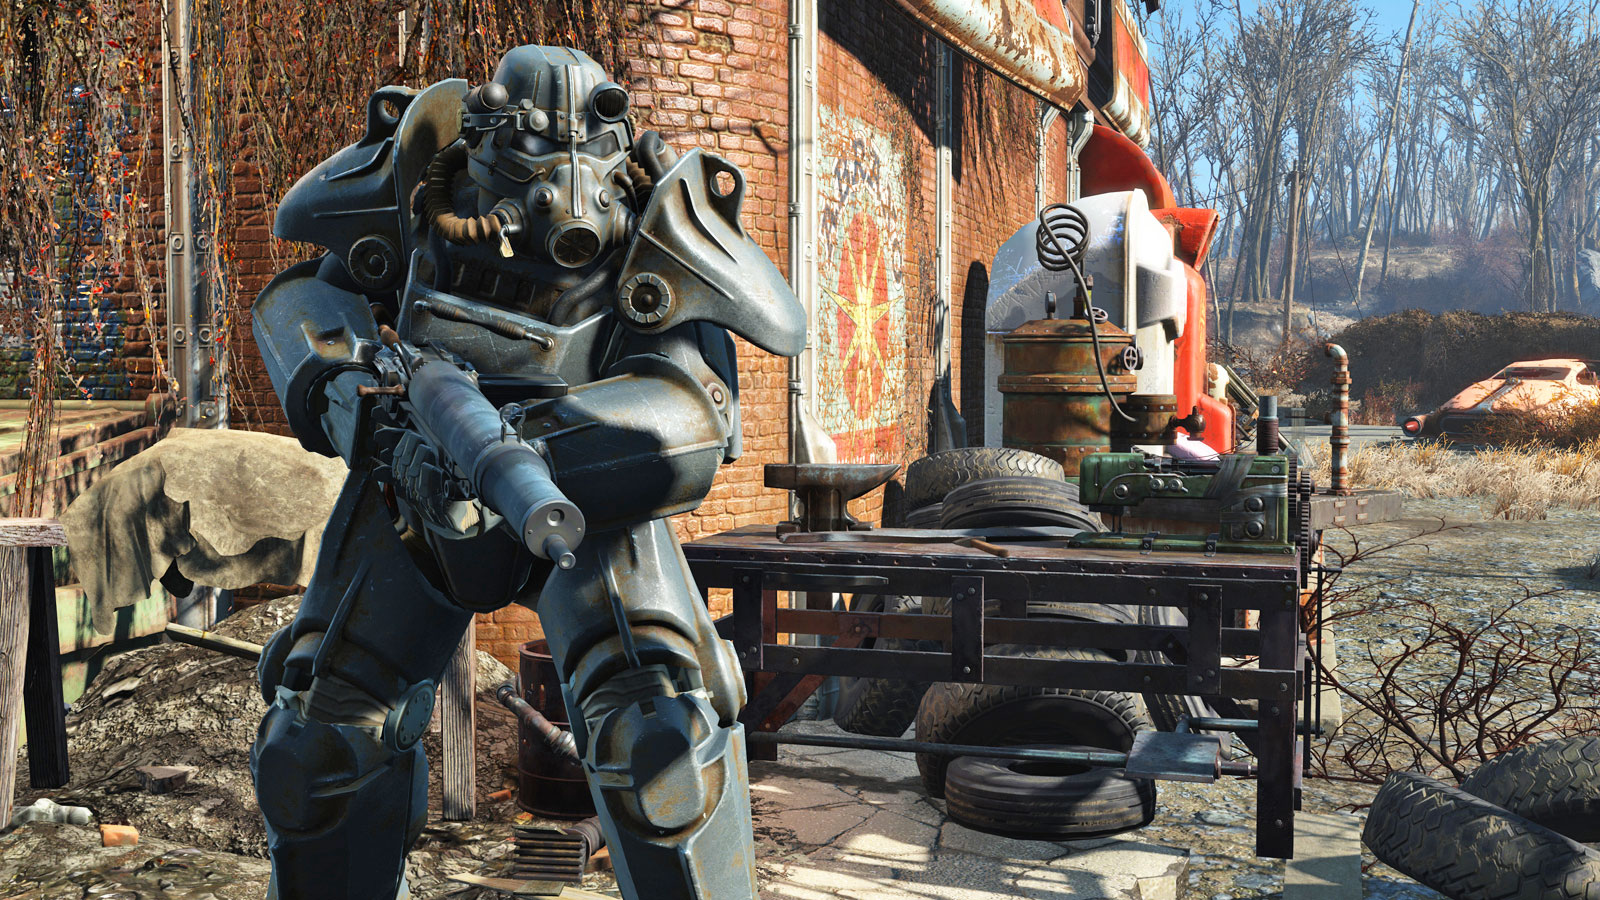 fallout 4 visual upgrade demands a monster pc